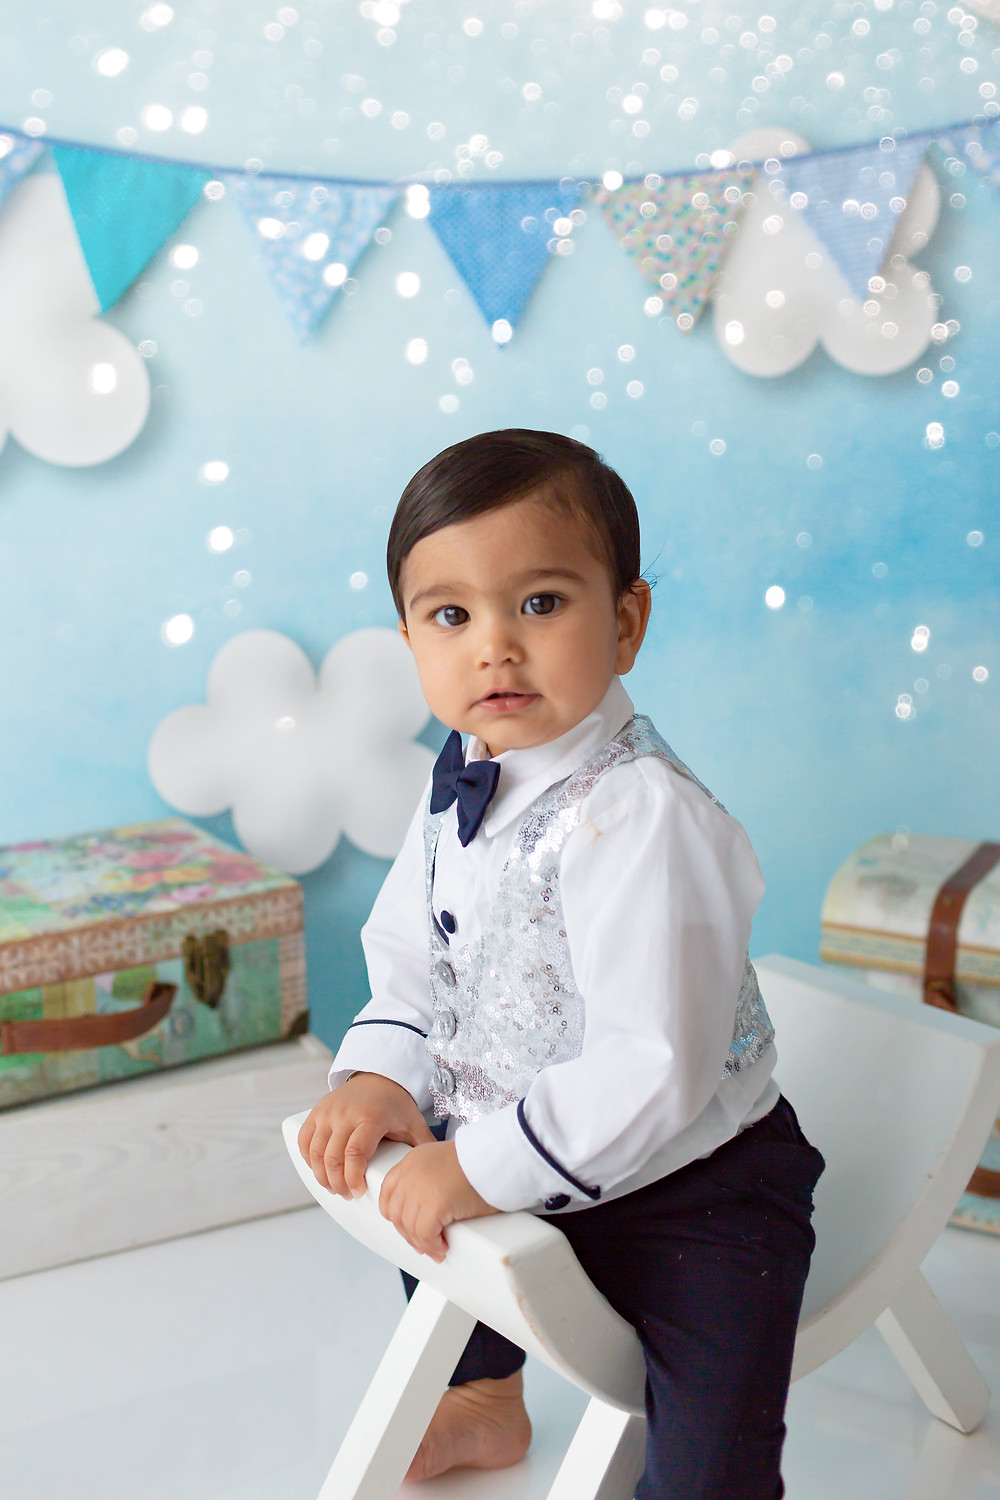 Cake Smash photography, handsome as ever, a little boy turning one sat on his stool wearing a suit and bow tie!